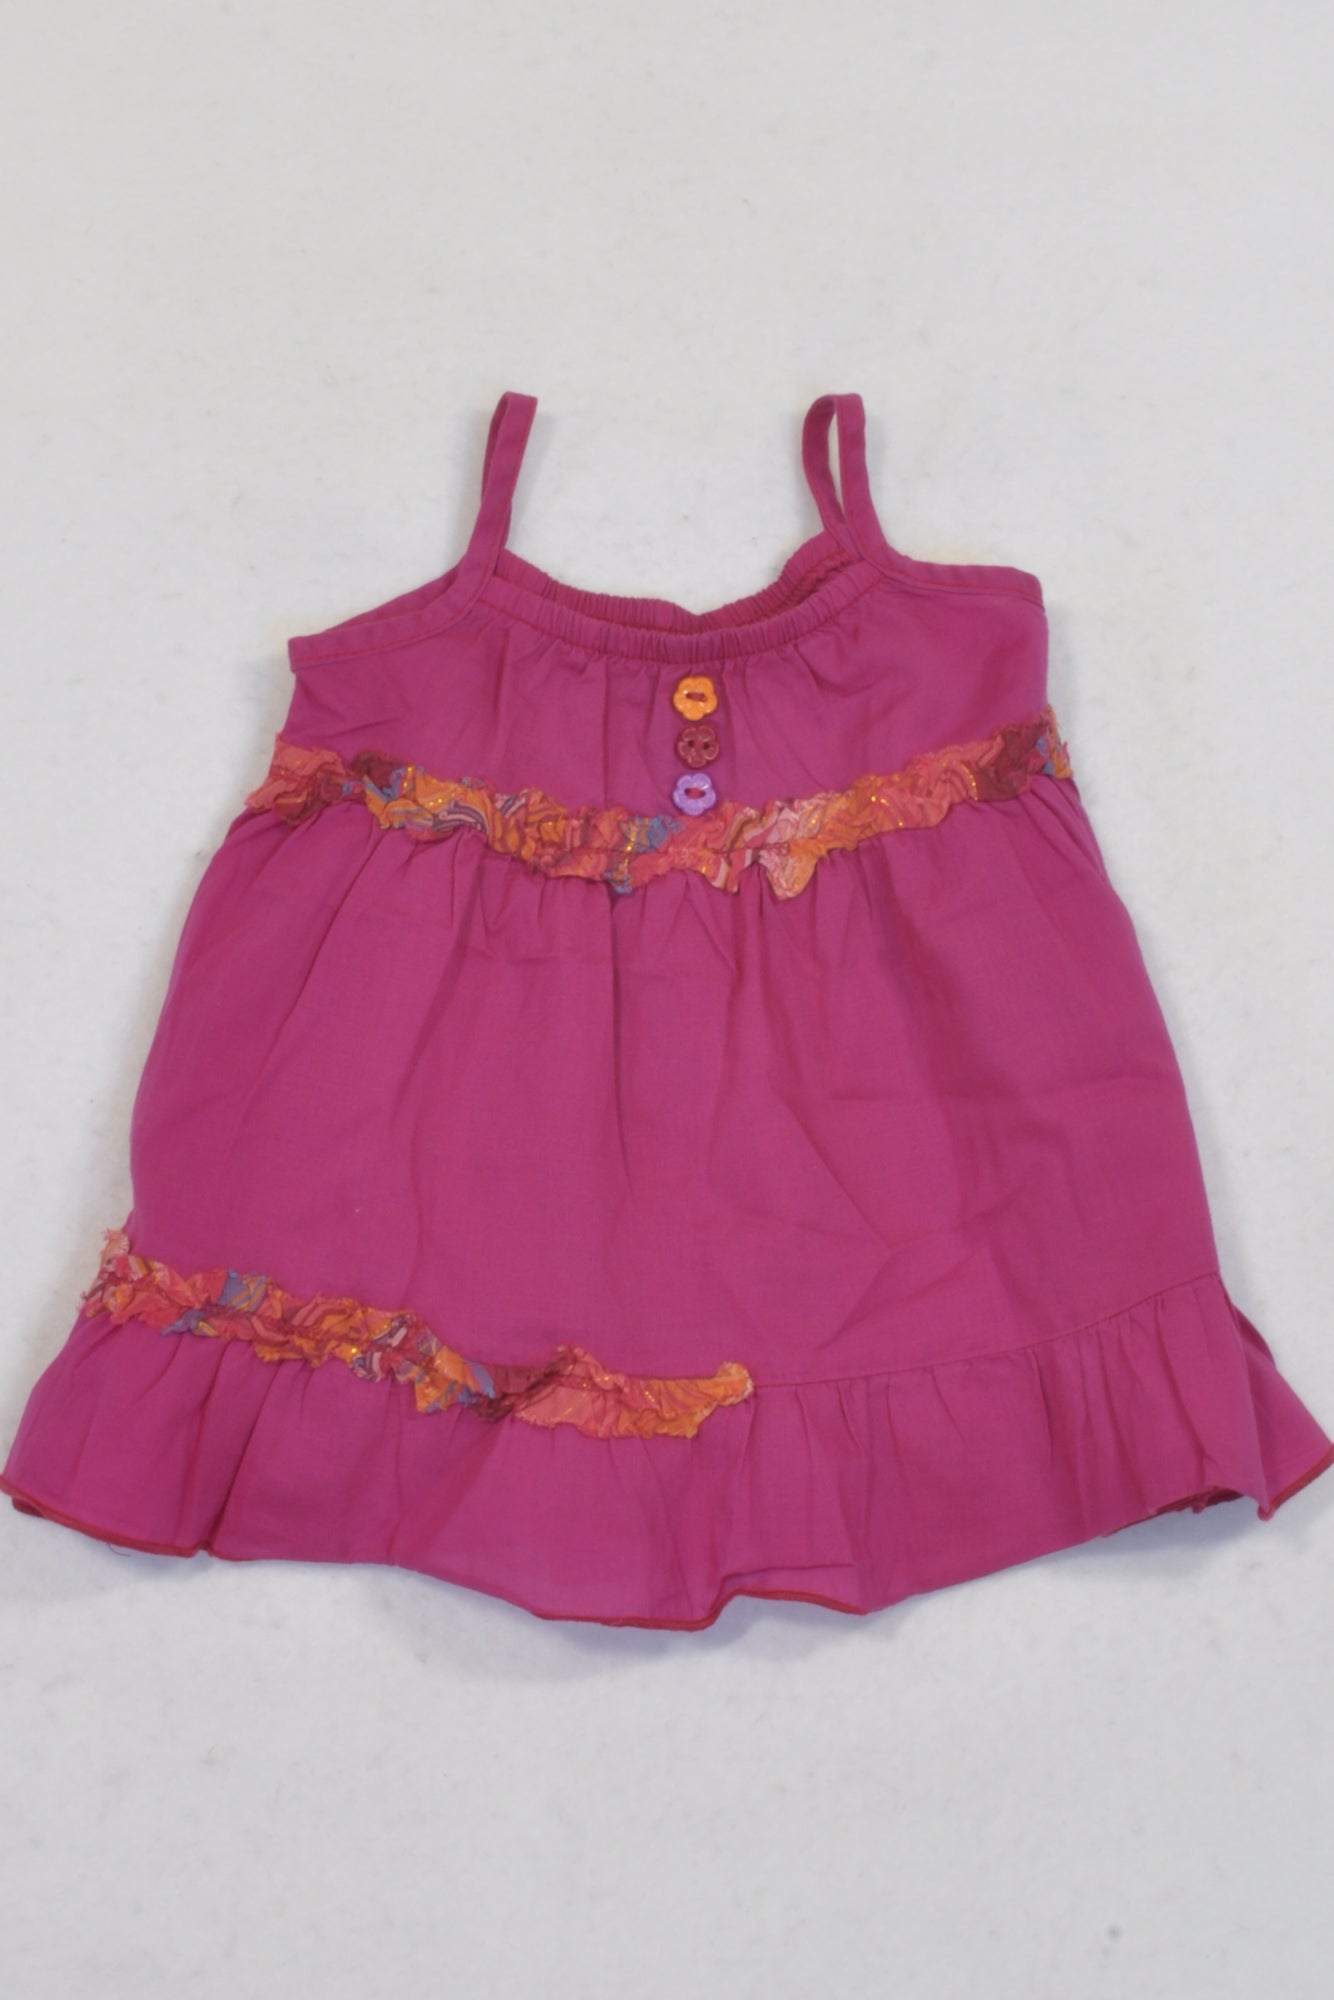 Woolworths Cerise & Orange Detail Dress Girls 0-3 months